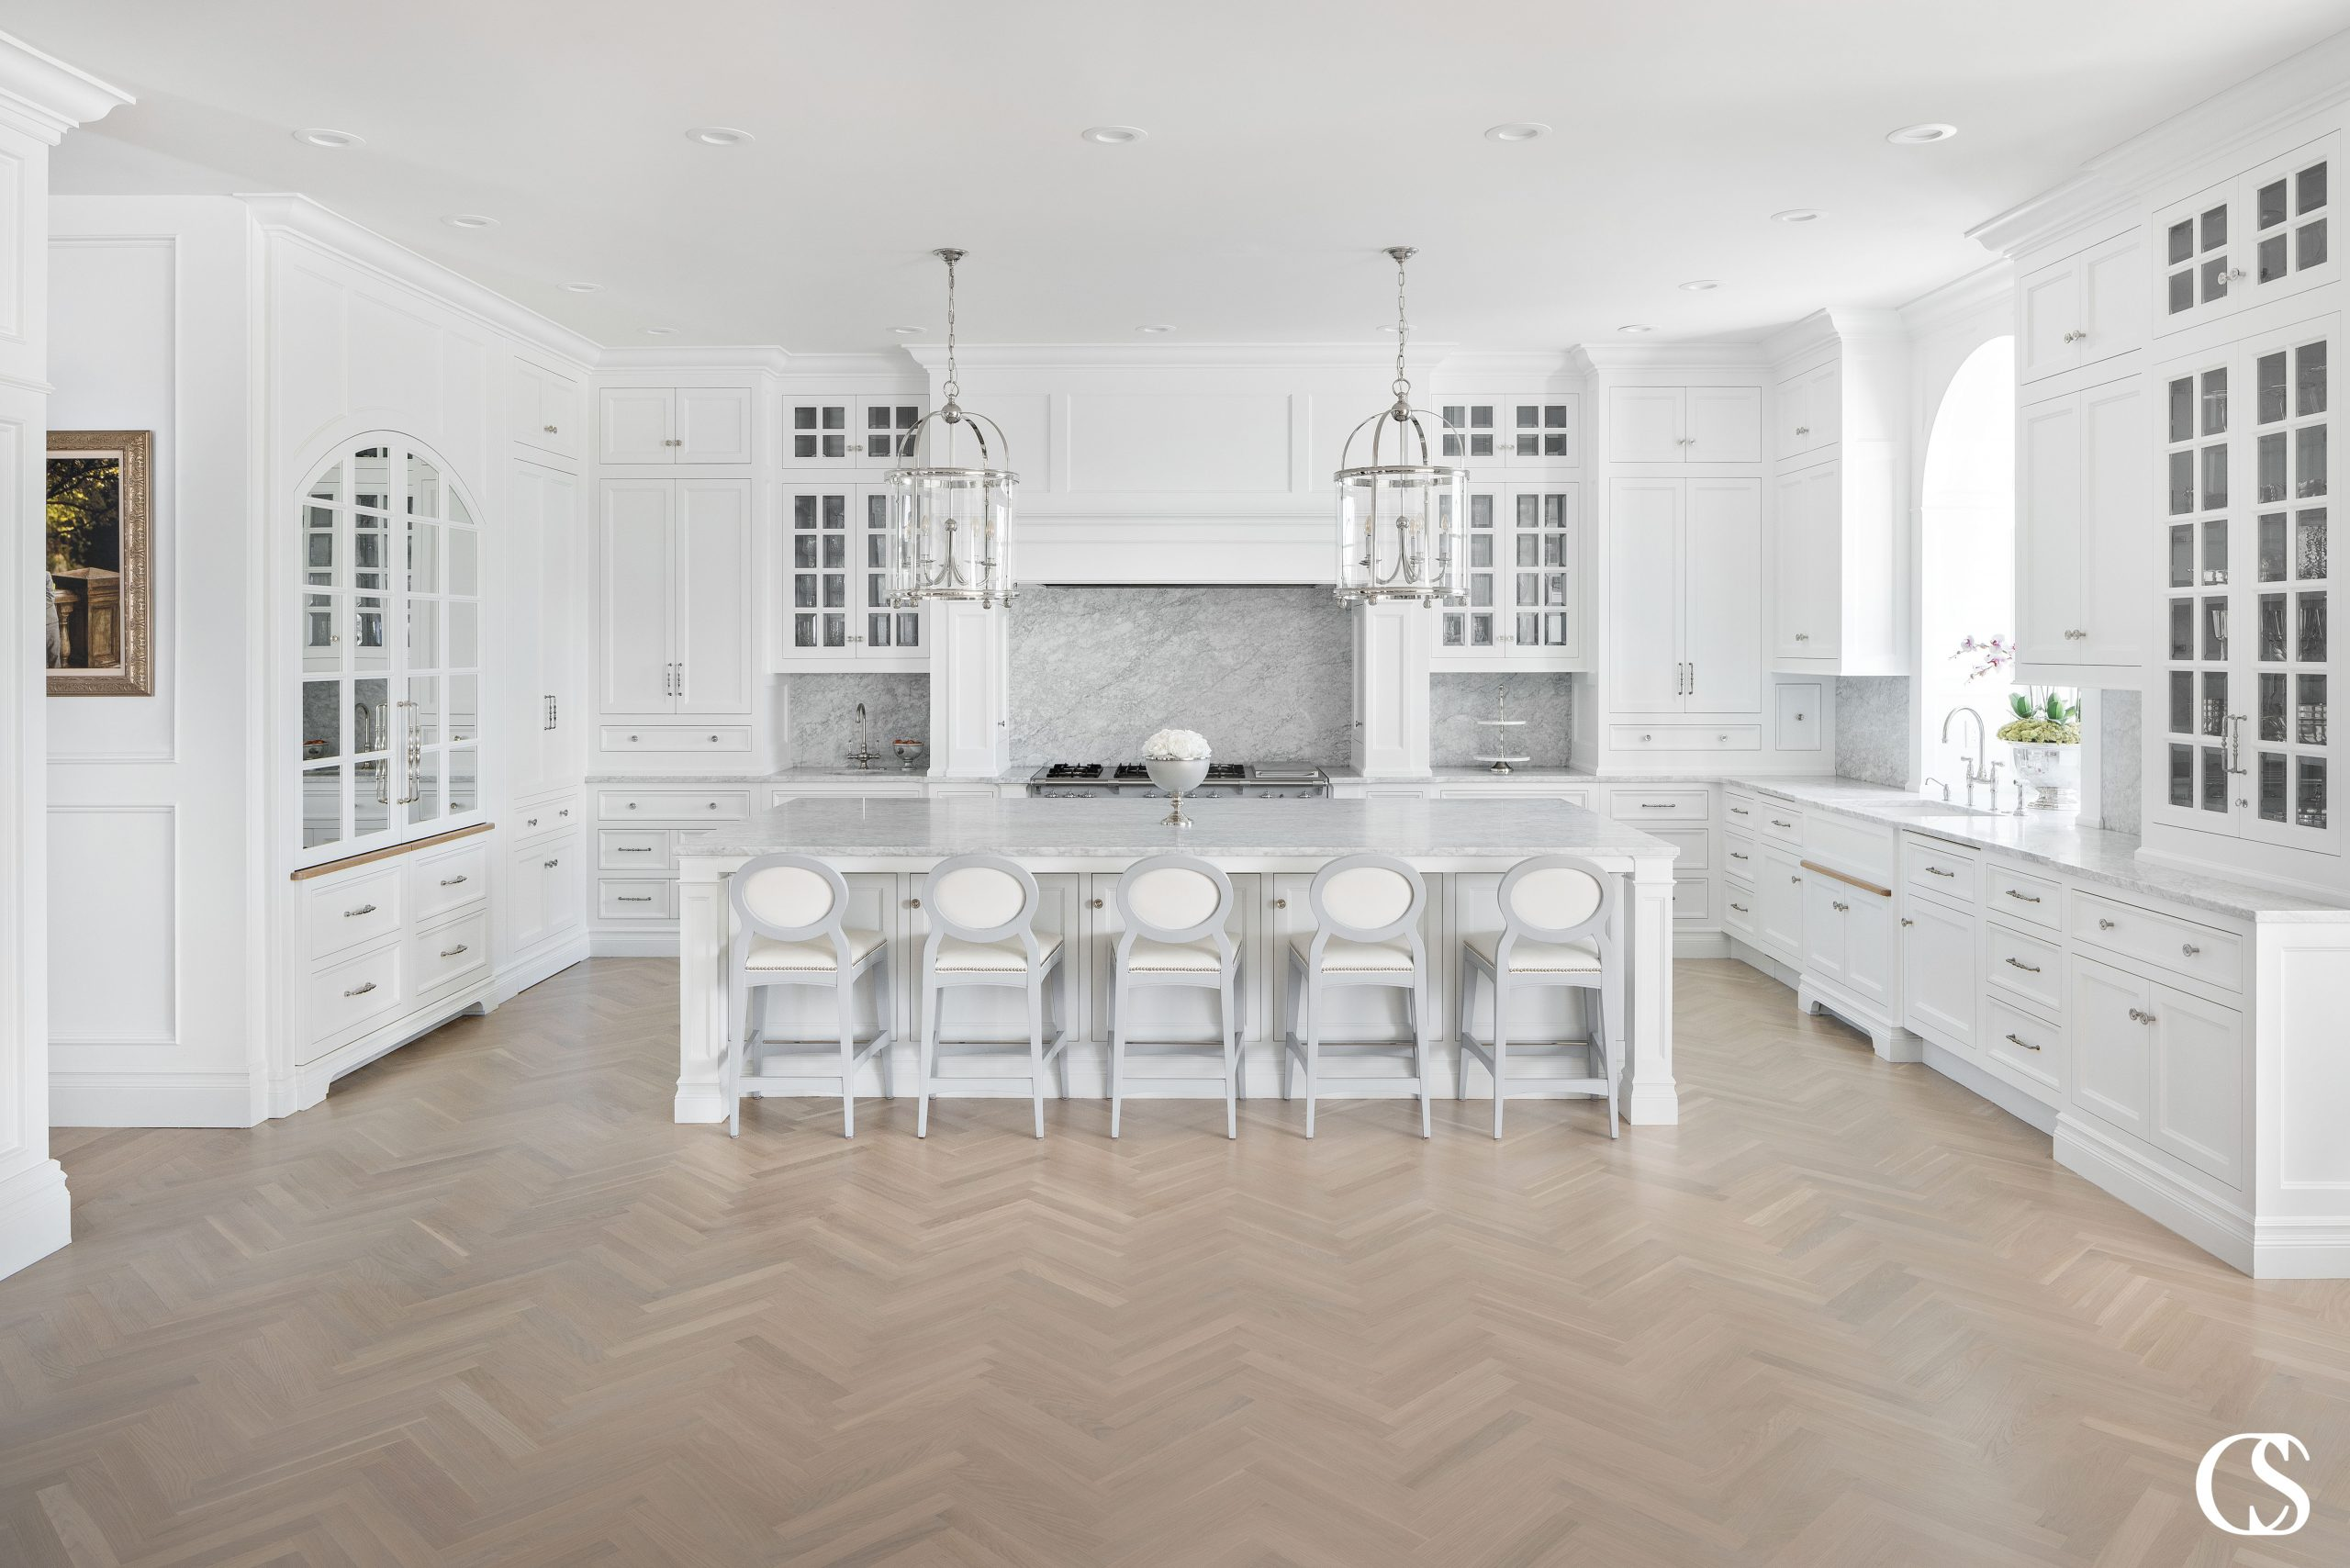 There are so many options for cabinetry and design—this white custom kitchen is full of so many custom design touches that give it a luxurious feel.